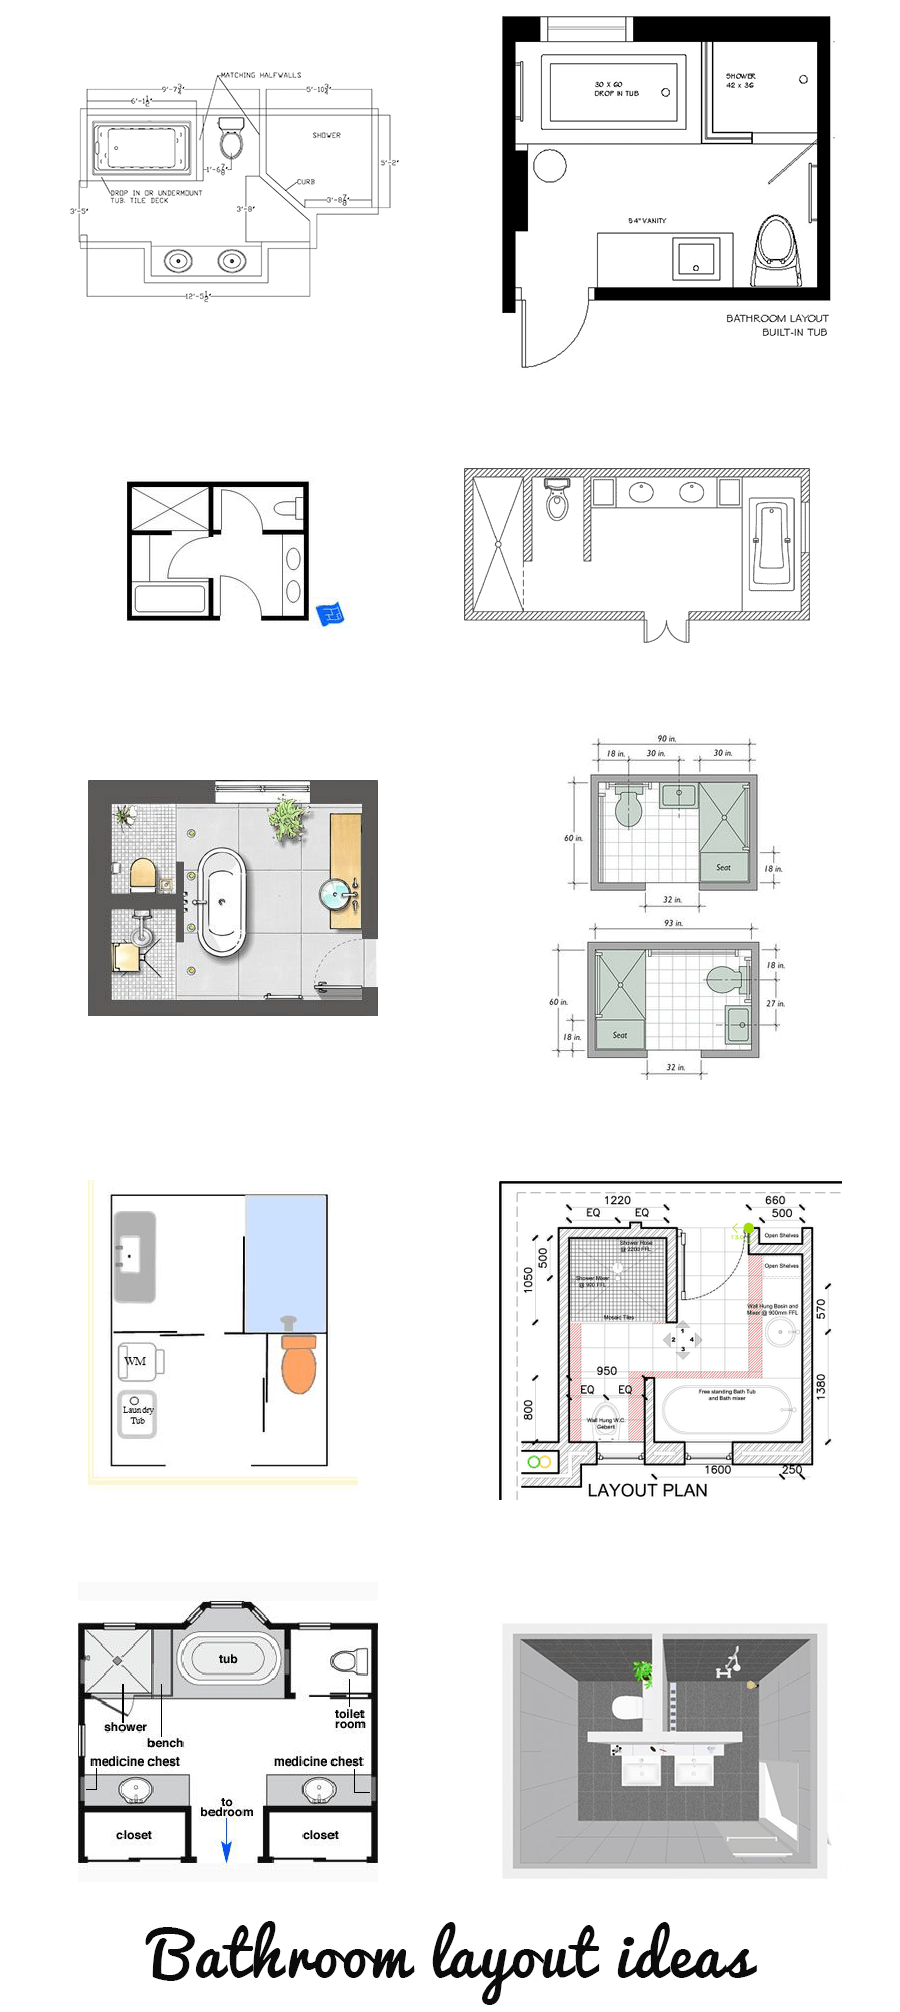 Looking for a bathroom layout katrina chambers for Bathroom layout ideas